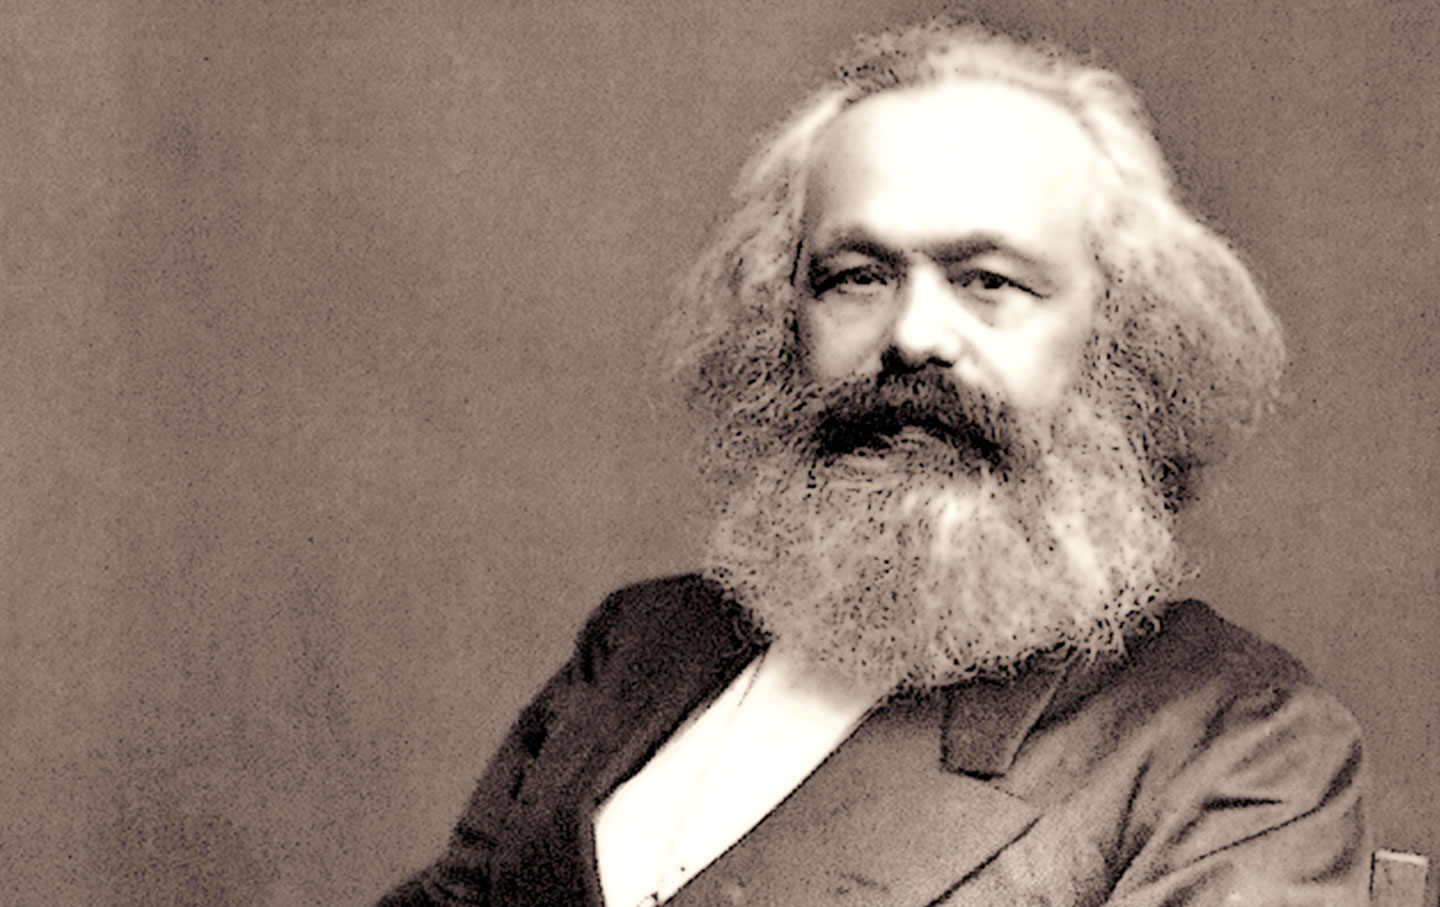 What-Does-'The-Communist-Manifesto'-Have-to-Offer-150-Years-After-Its-Publication